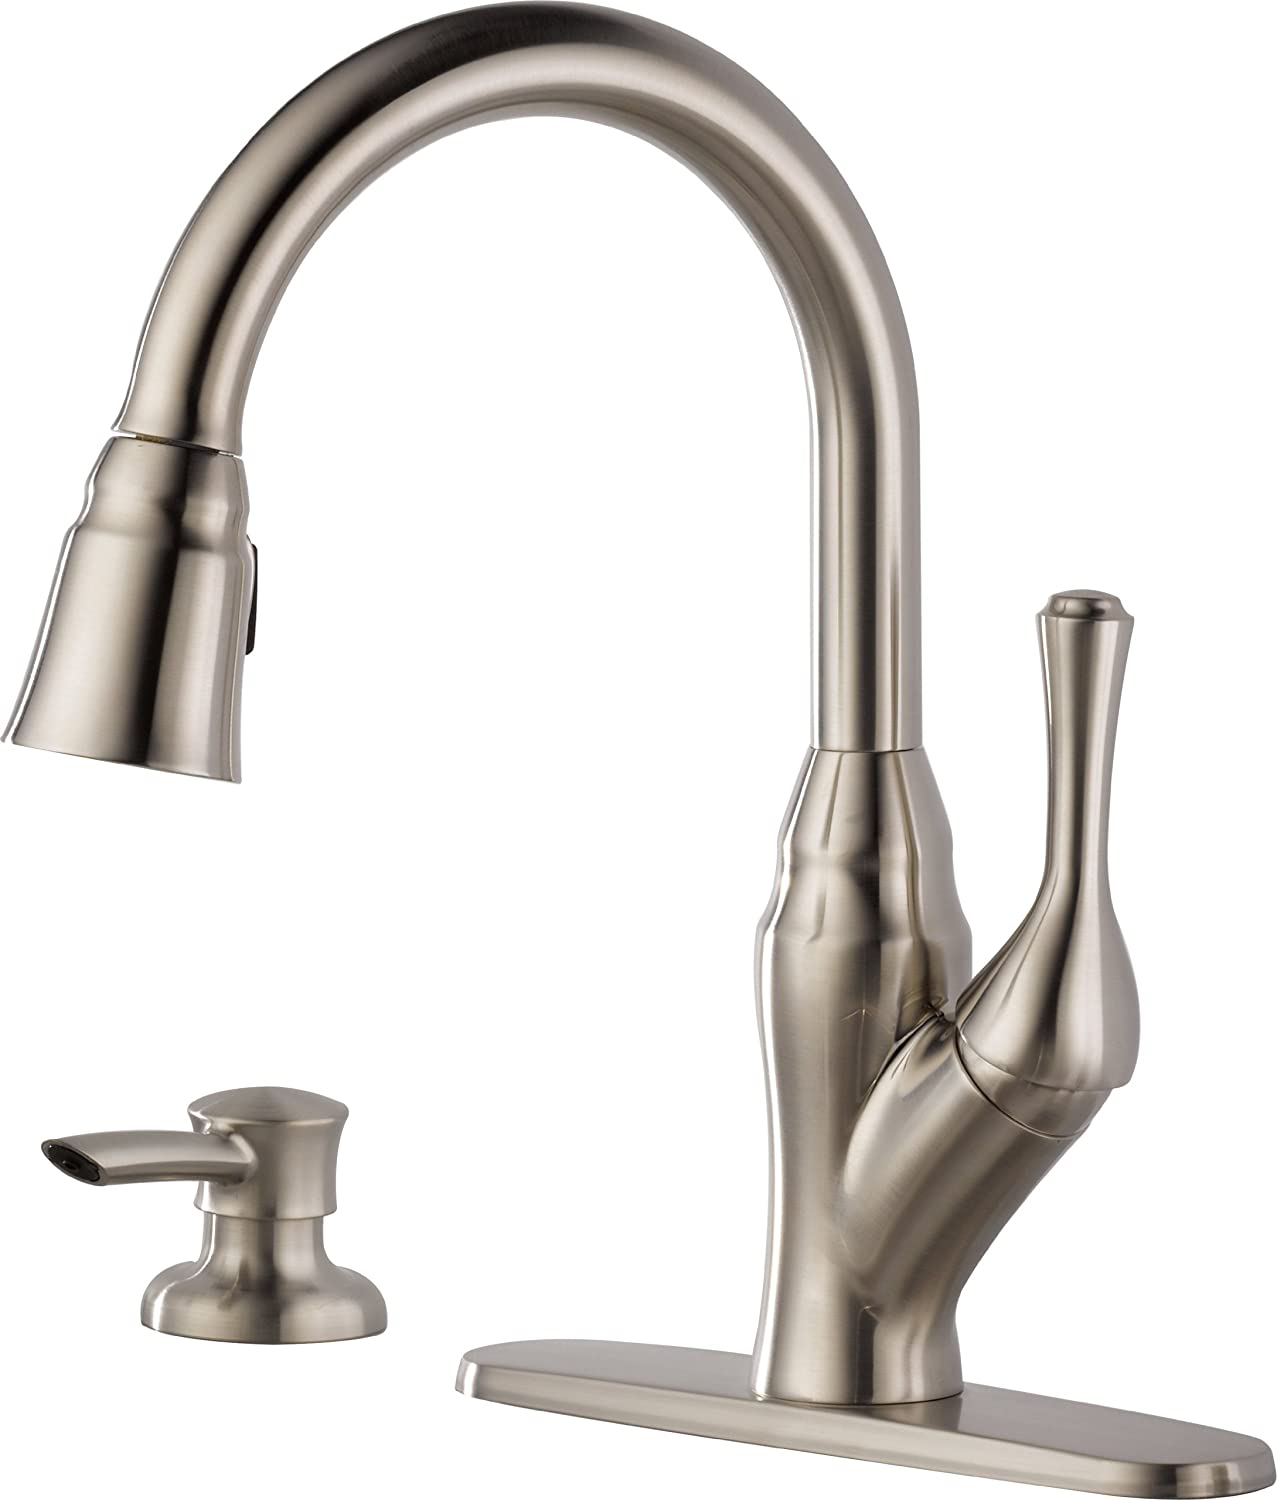 Delta 16971-SSSD-DST Velino Pull-Down Kitchen Faucet with Integrated Soap  Dispenser, Stainless